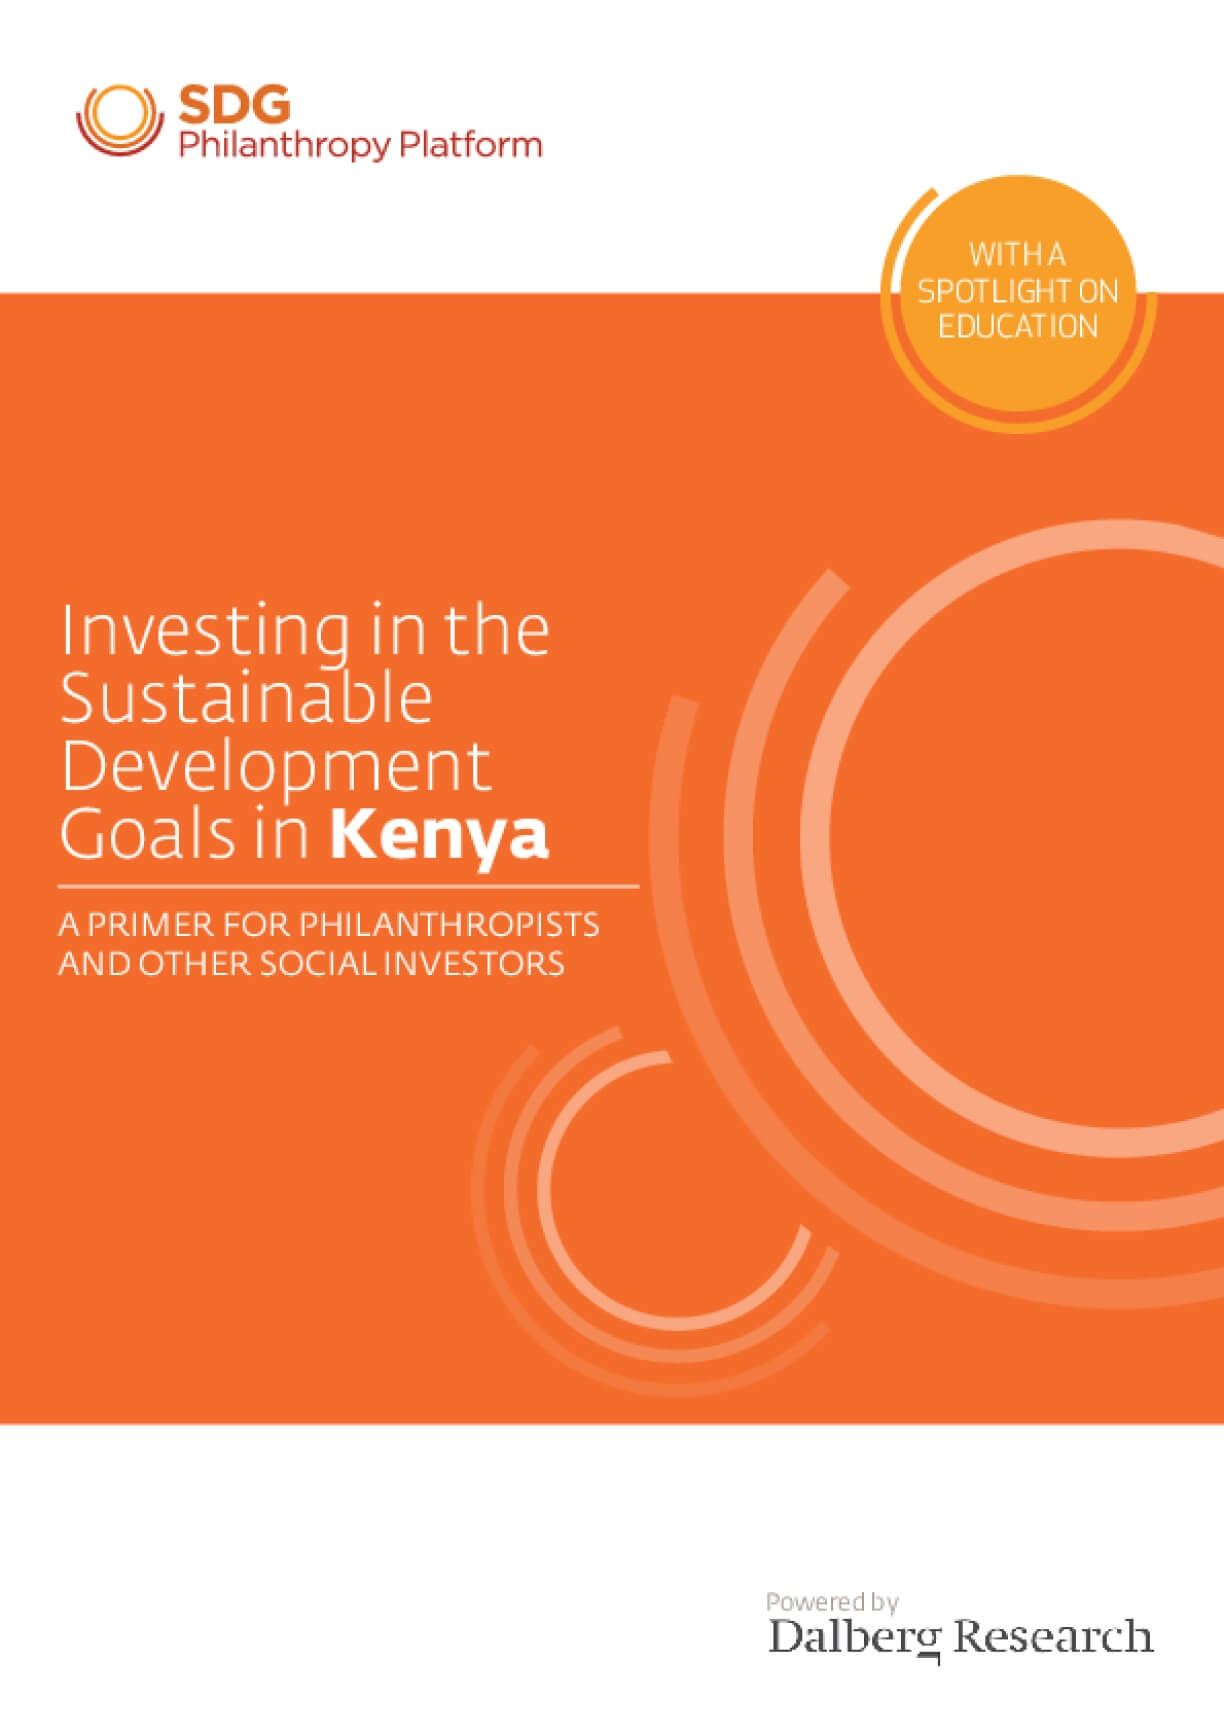 Investing in the Sustainable Development Goals in Kenya: A Primer for Philanthropists and Other Social Investors